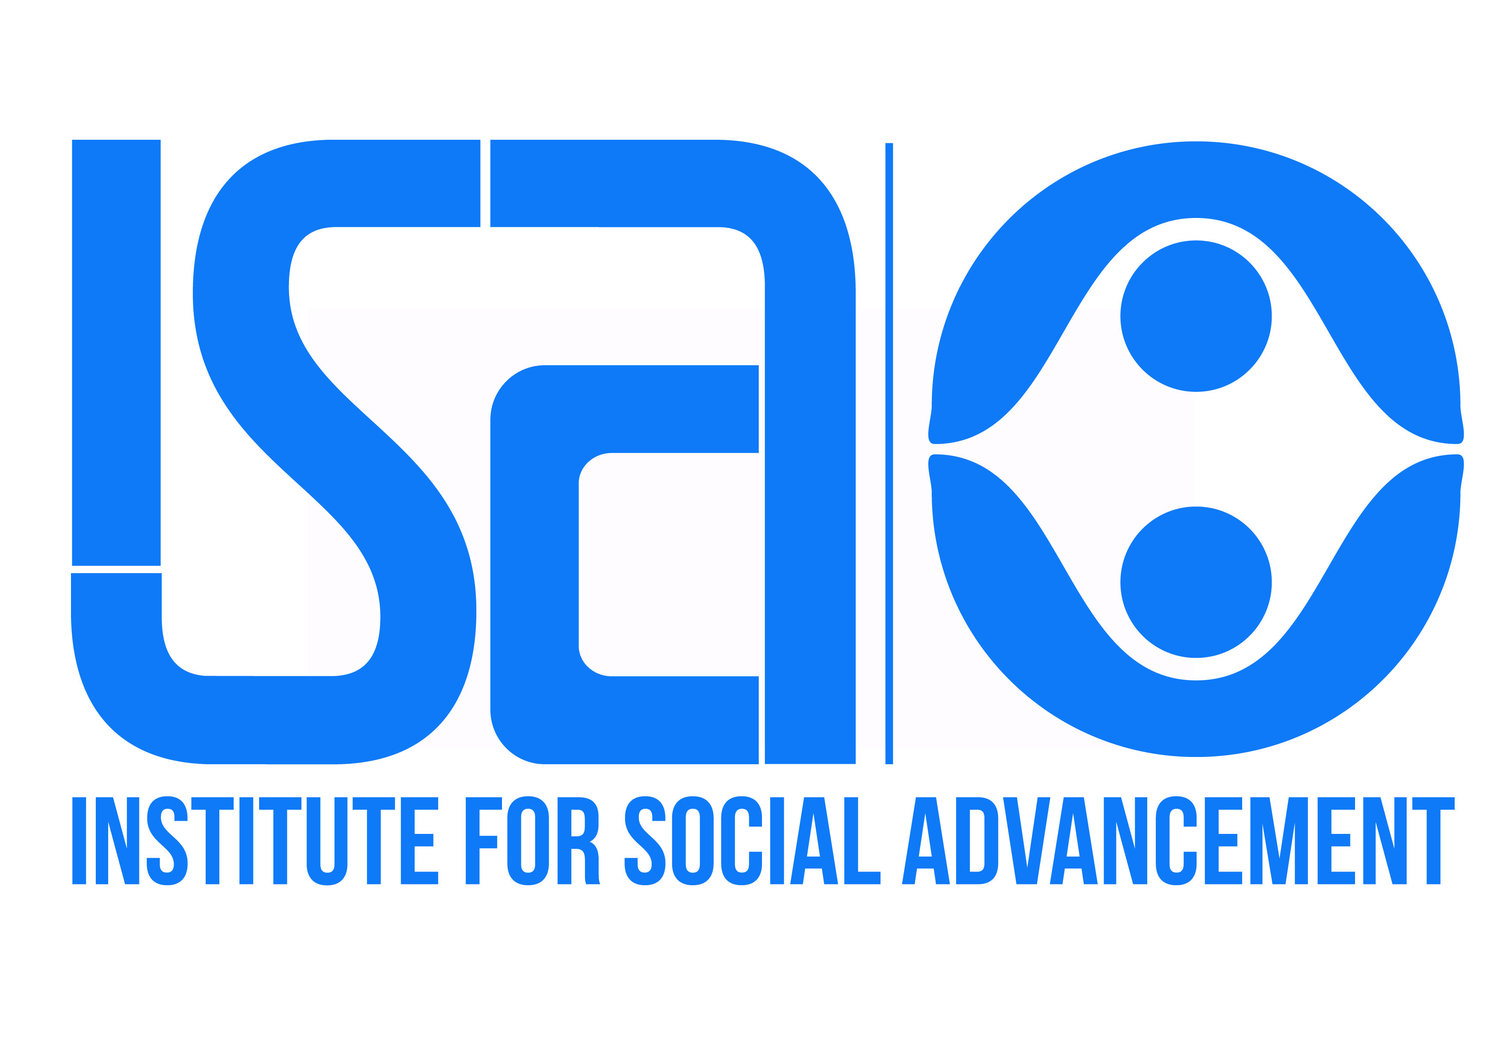 Institute for Social Advancement